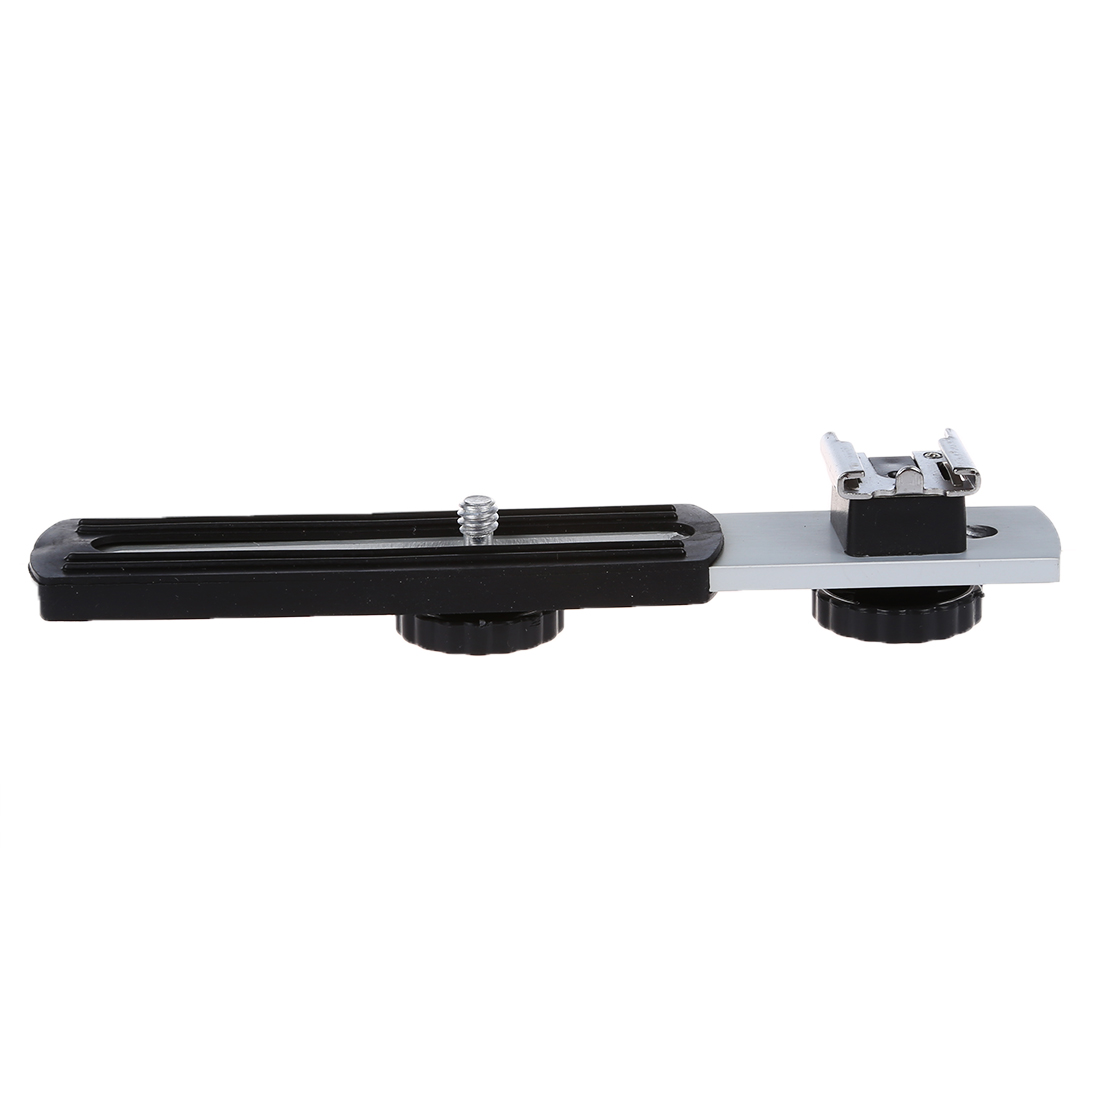 "Universal 1/4"" Sliding Screw Metal Flash Bracket for Digital Camera"